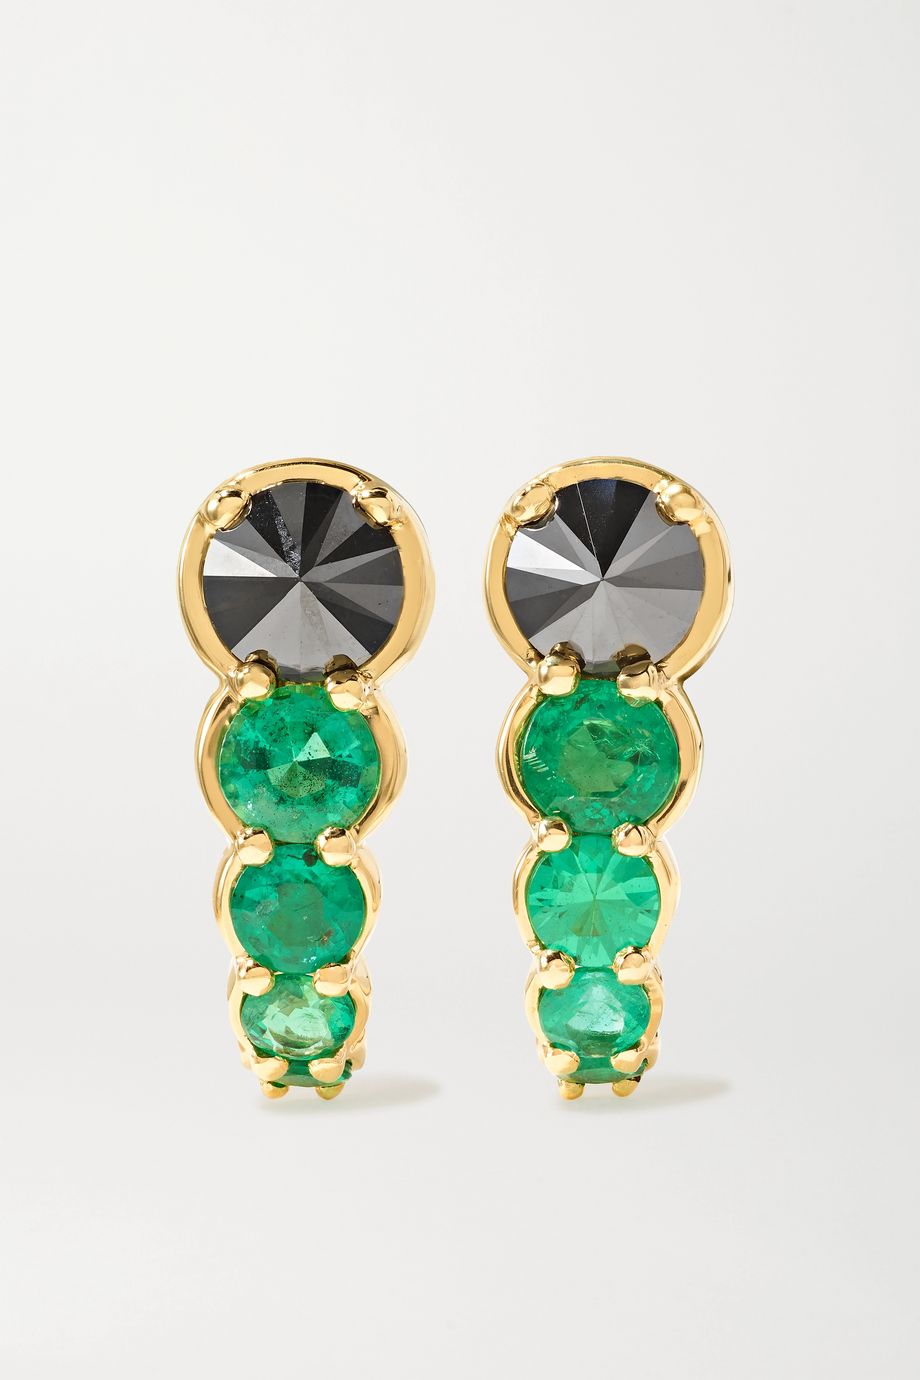 Ara Vartanian Hook 18-karat gold, diamond and emerald earrings